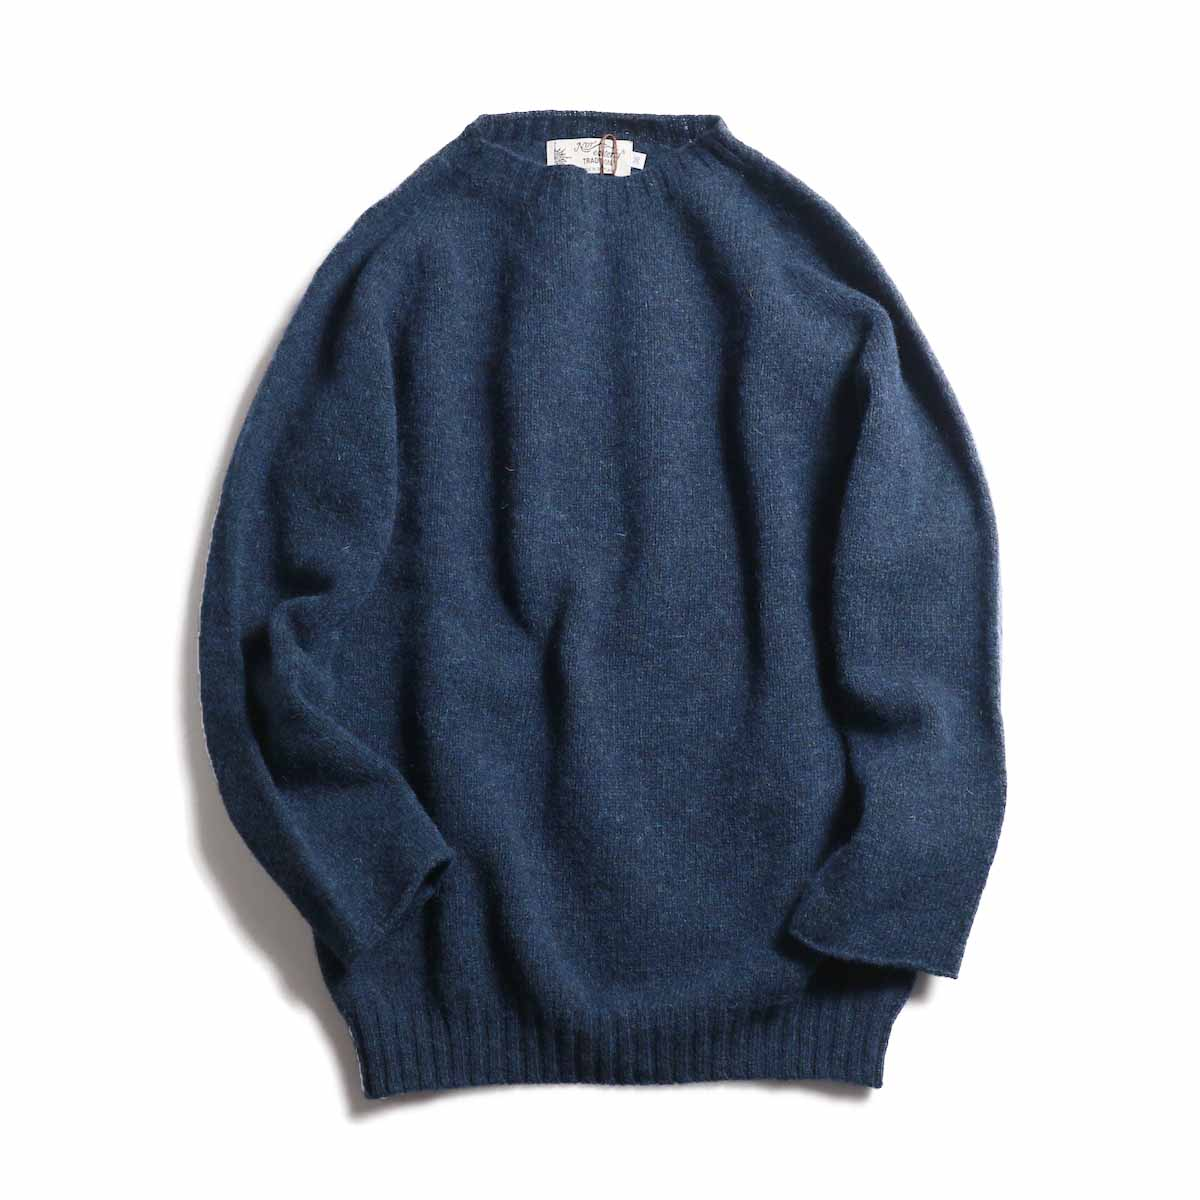 NOR'EASTERLY / L/S Crew Neck Knit -DK GREEN